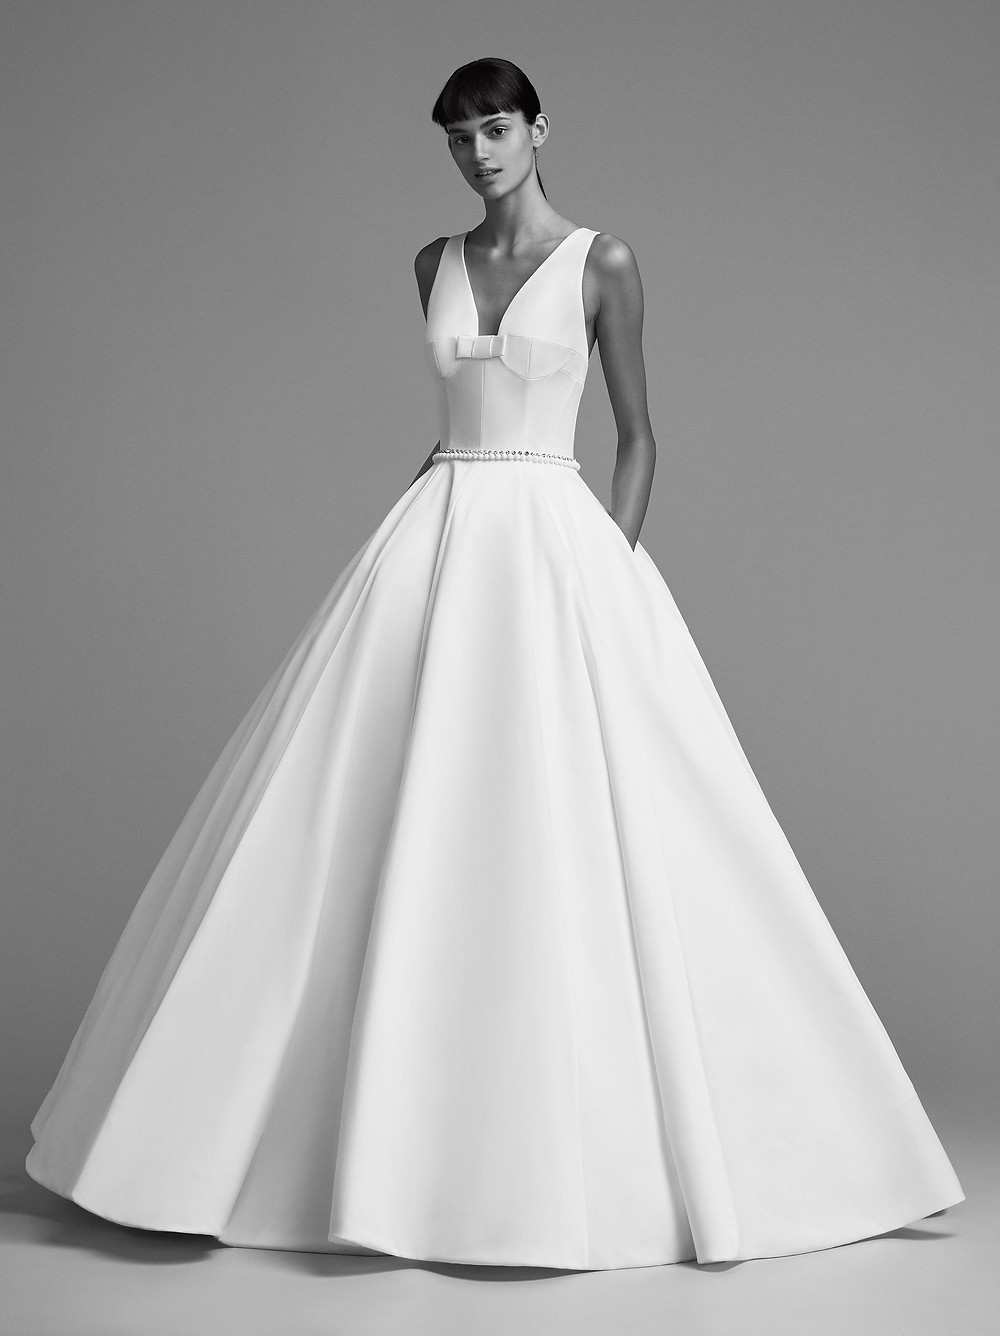 A Viktor & Rolf simple crepe ball gown wedding dress with pockets